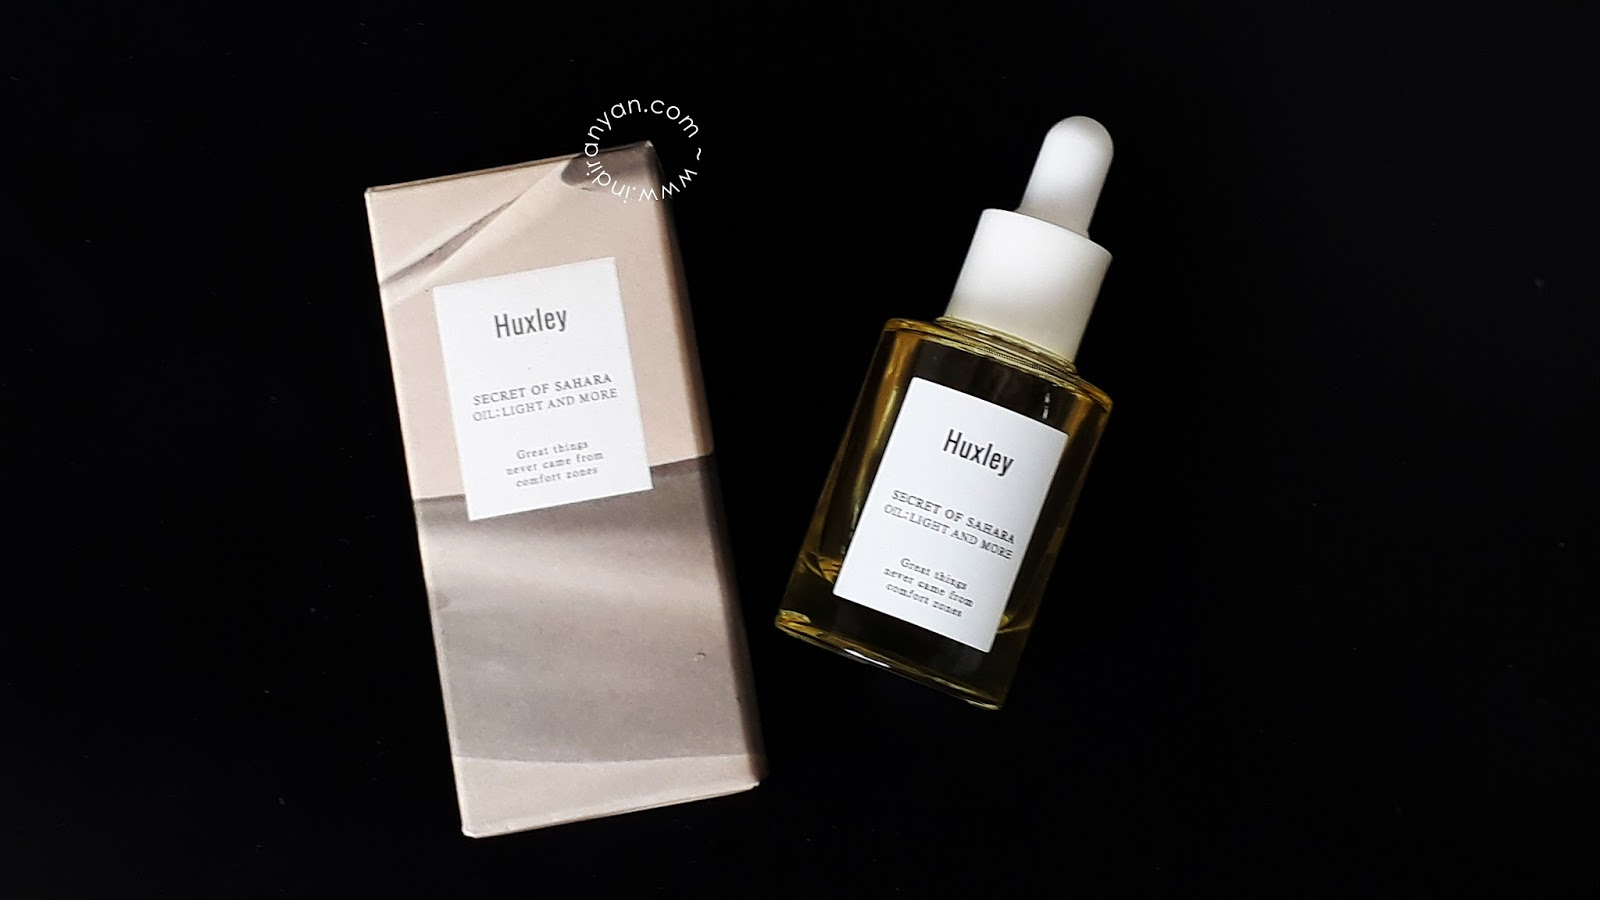 huxley-oil-light-and-more, huxley-indonesia-review